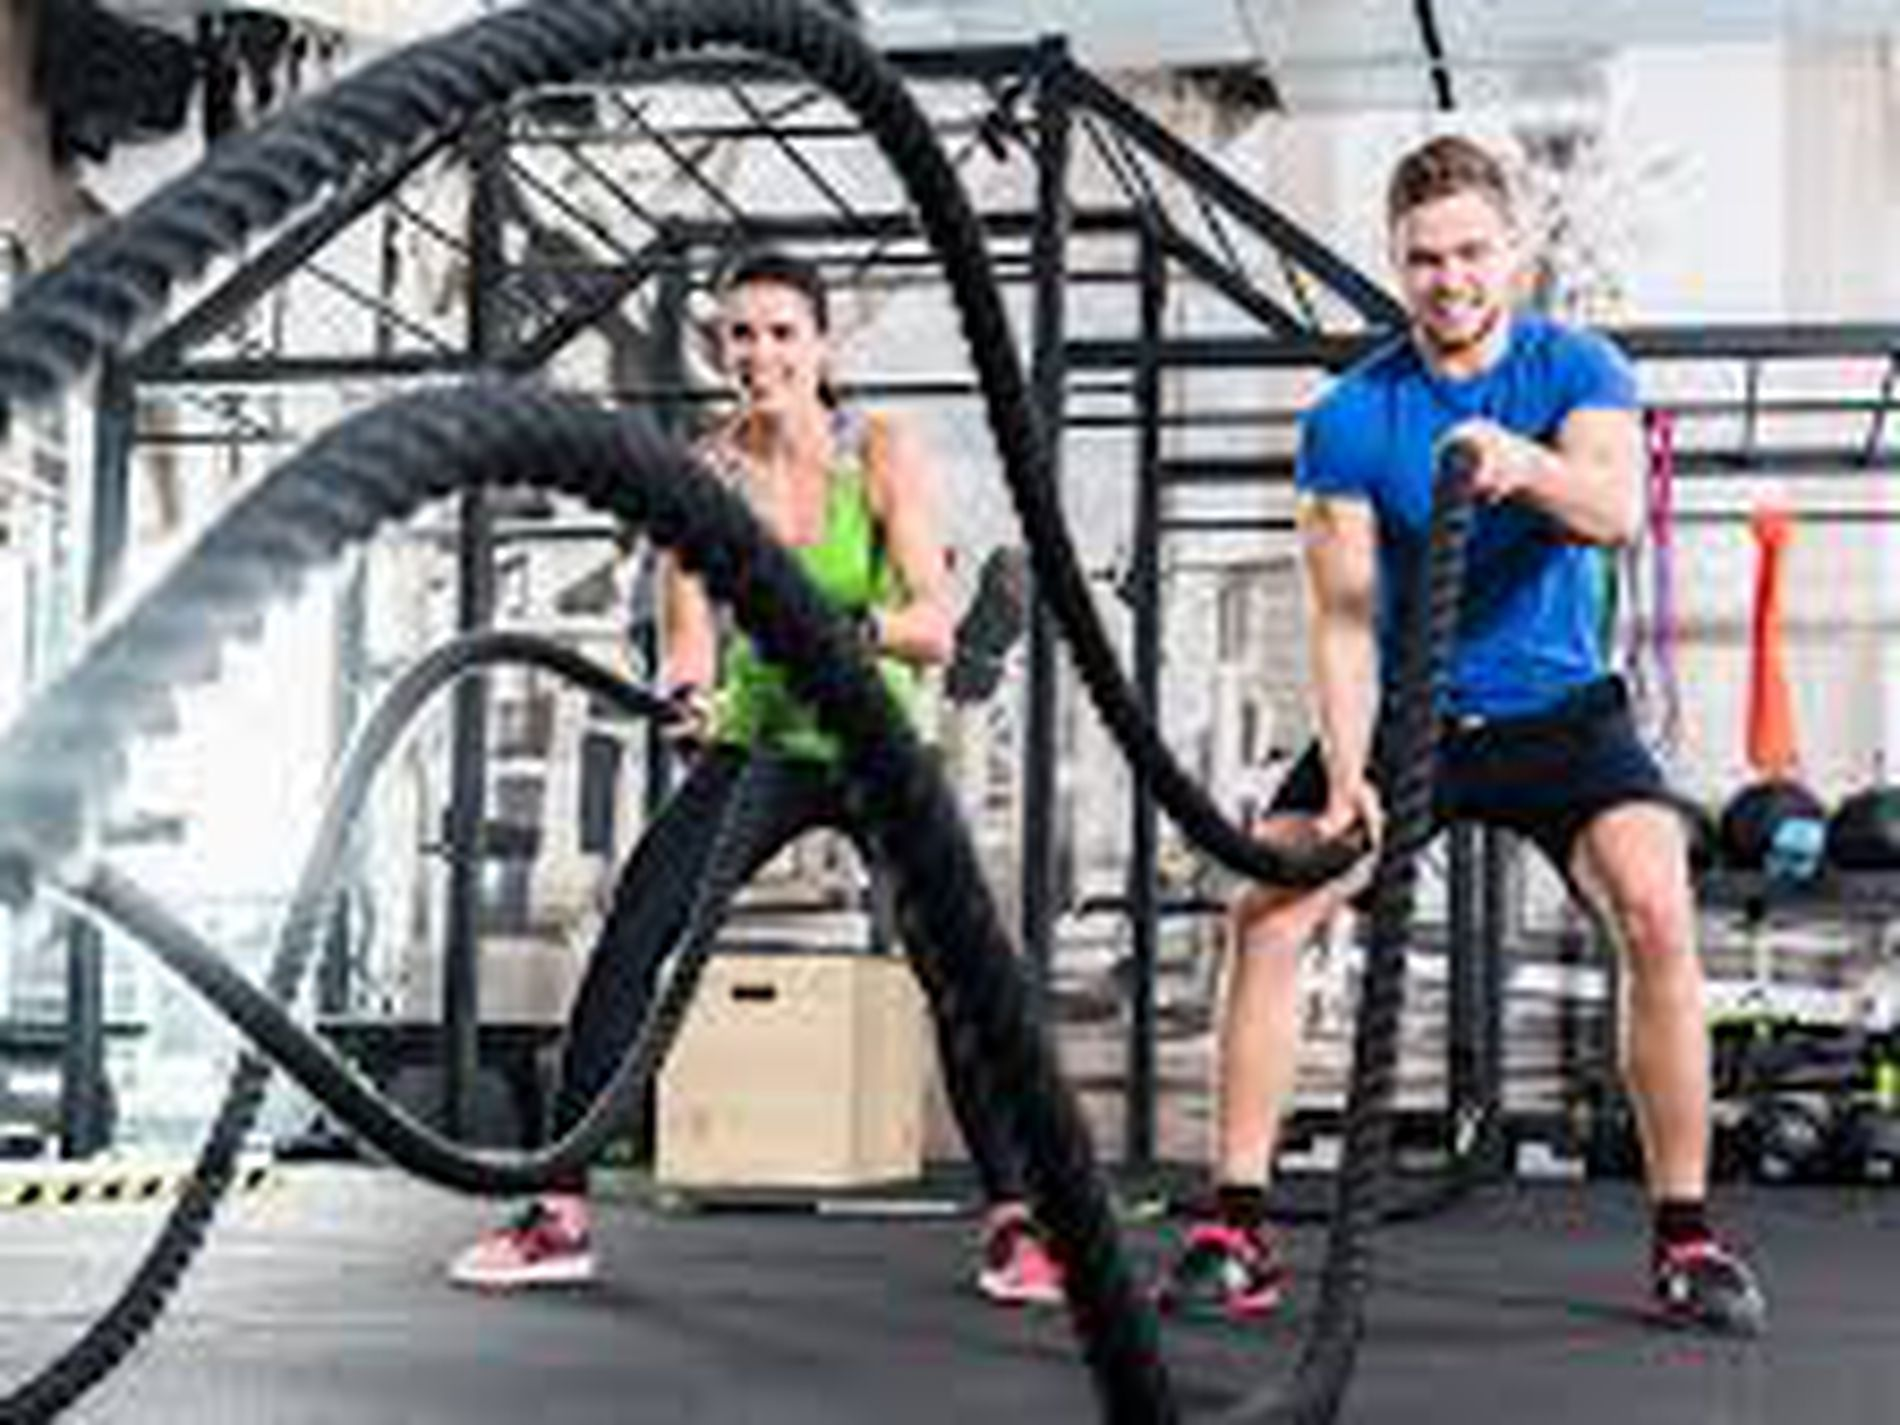 Gym Training Fitness Studio Business For Sale